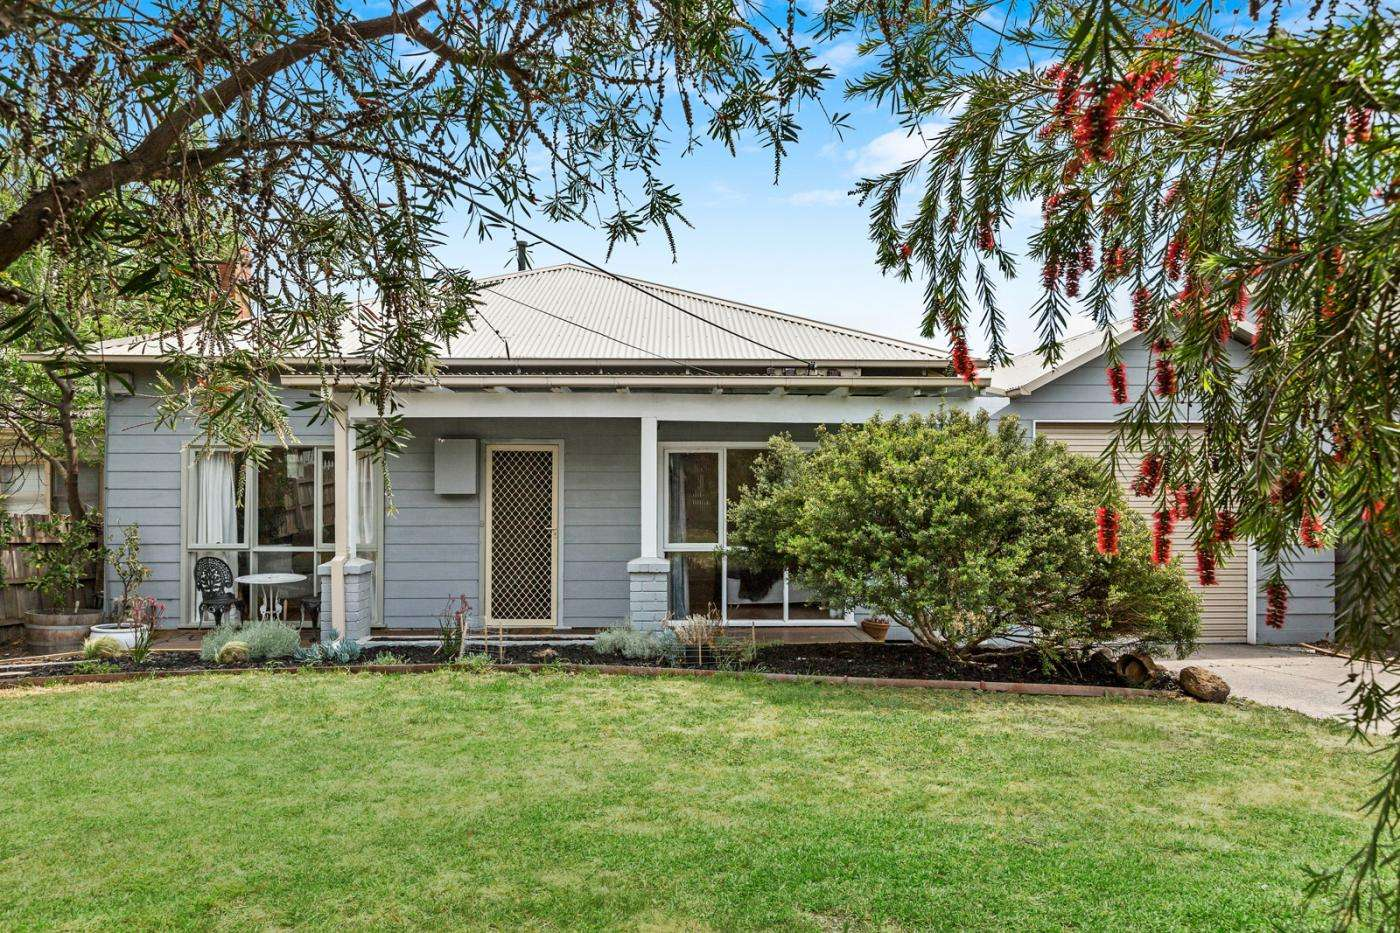 Main view of Homely house listing, 2 Balcombe Street, Frankston, VIC 3199